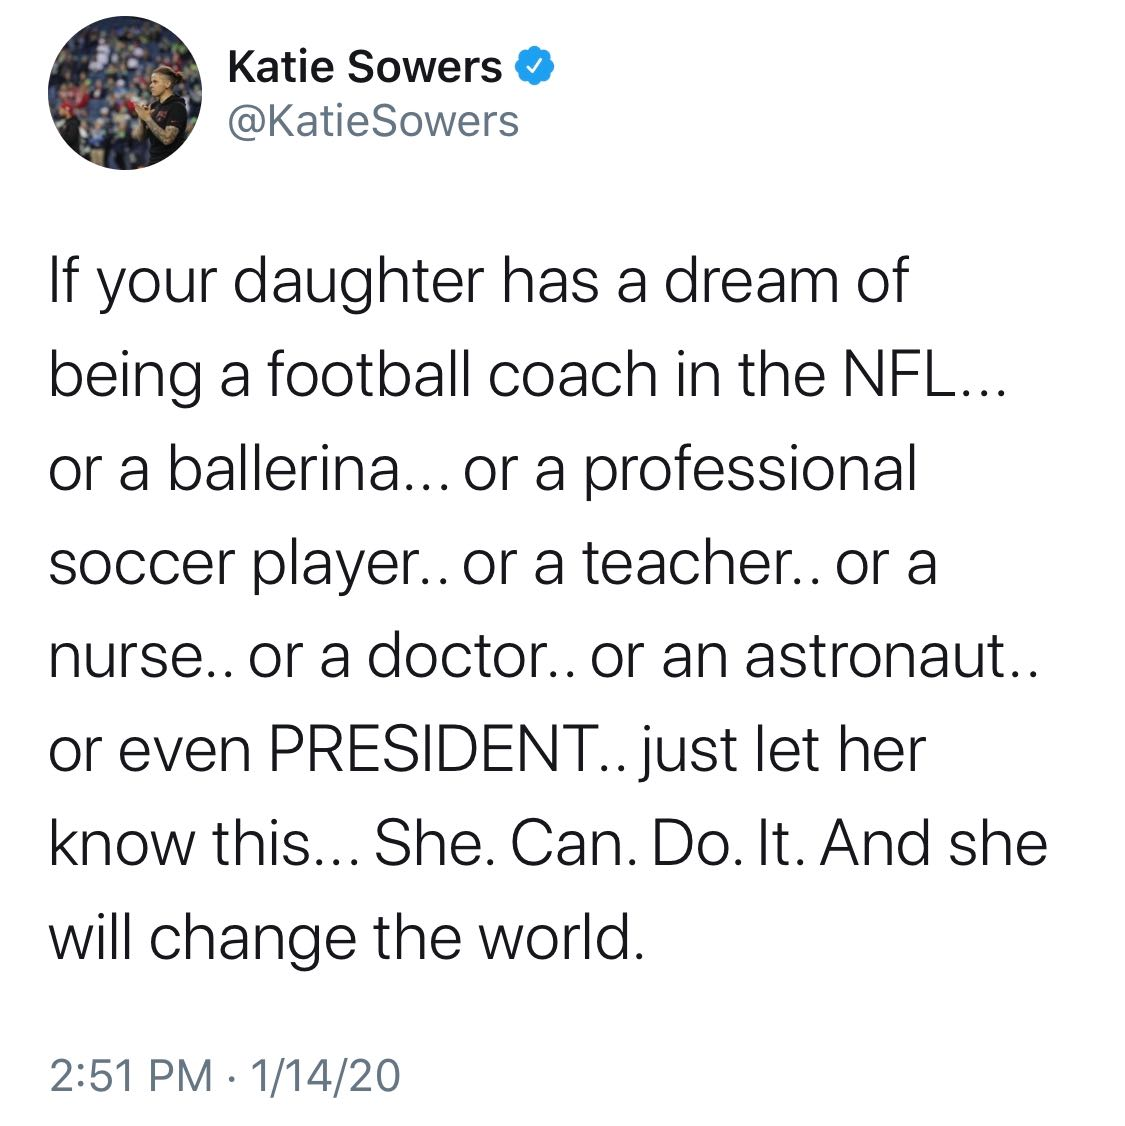 An inspirational tweet from 49ers coach Katie Sowers